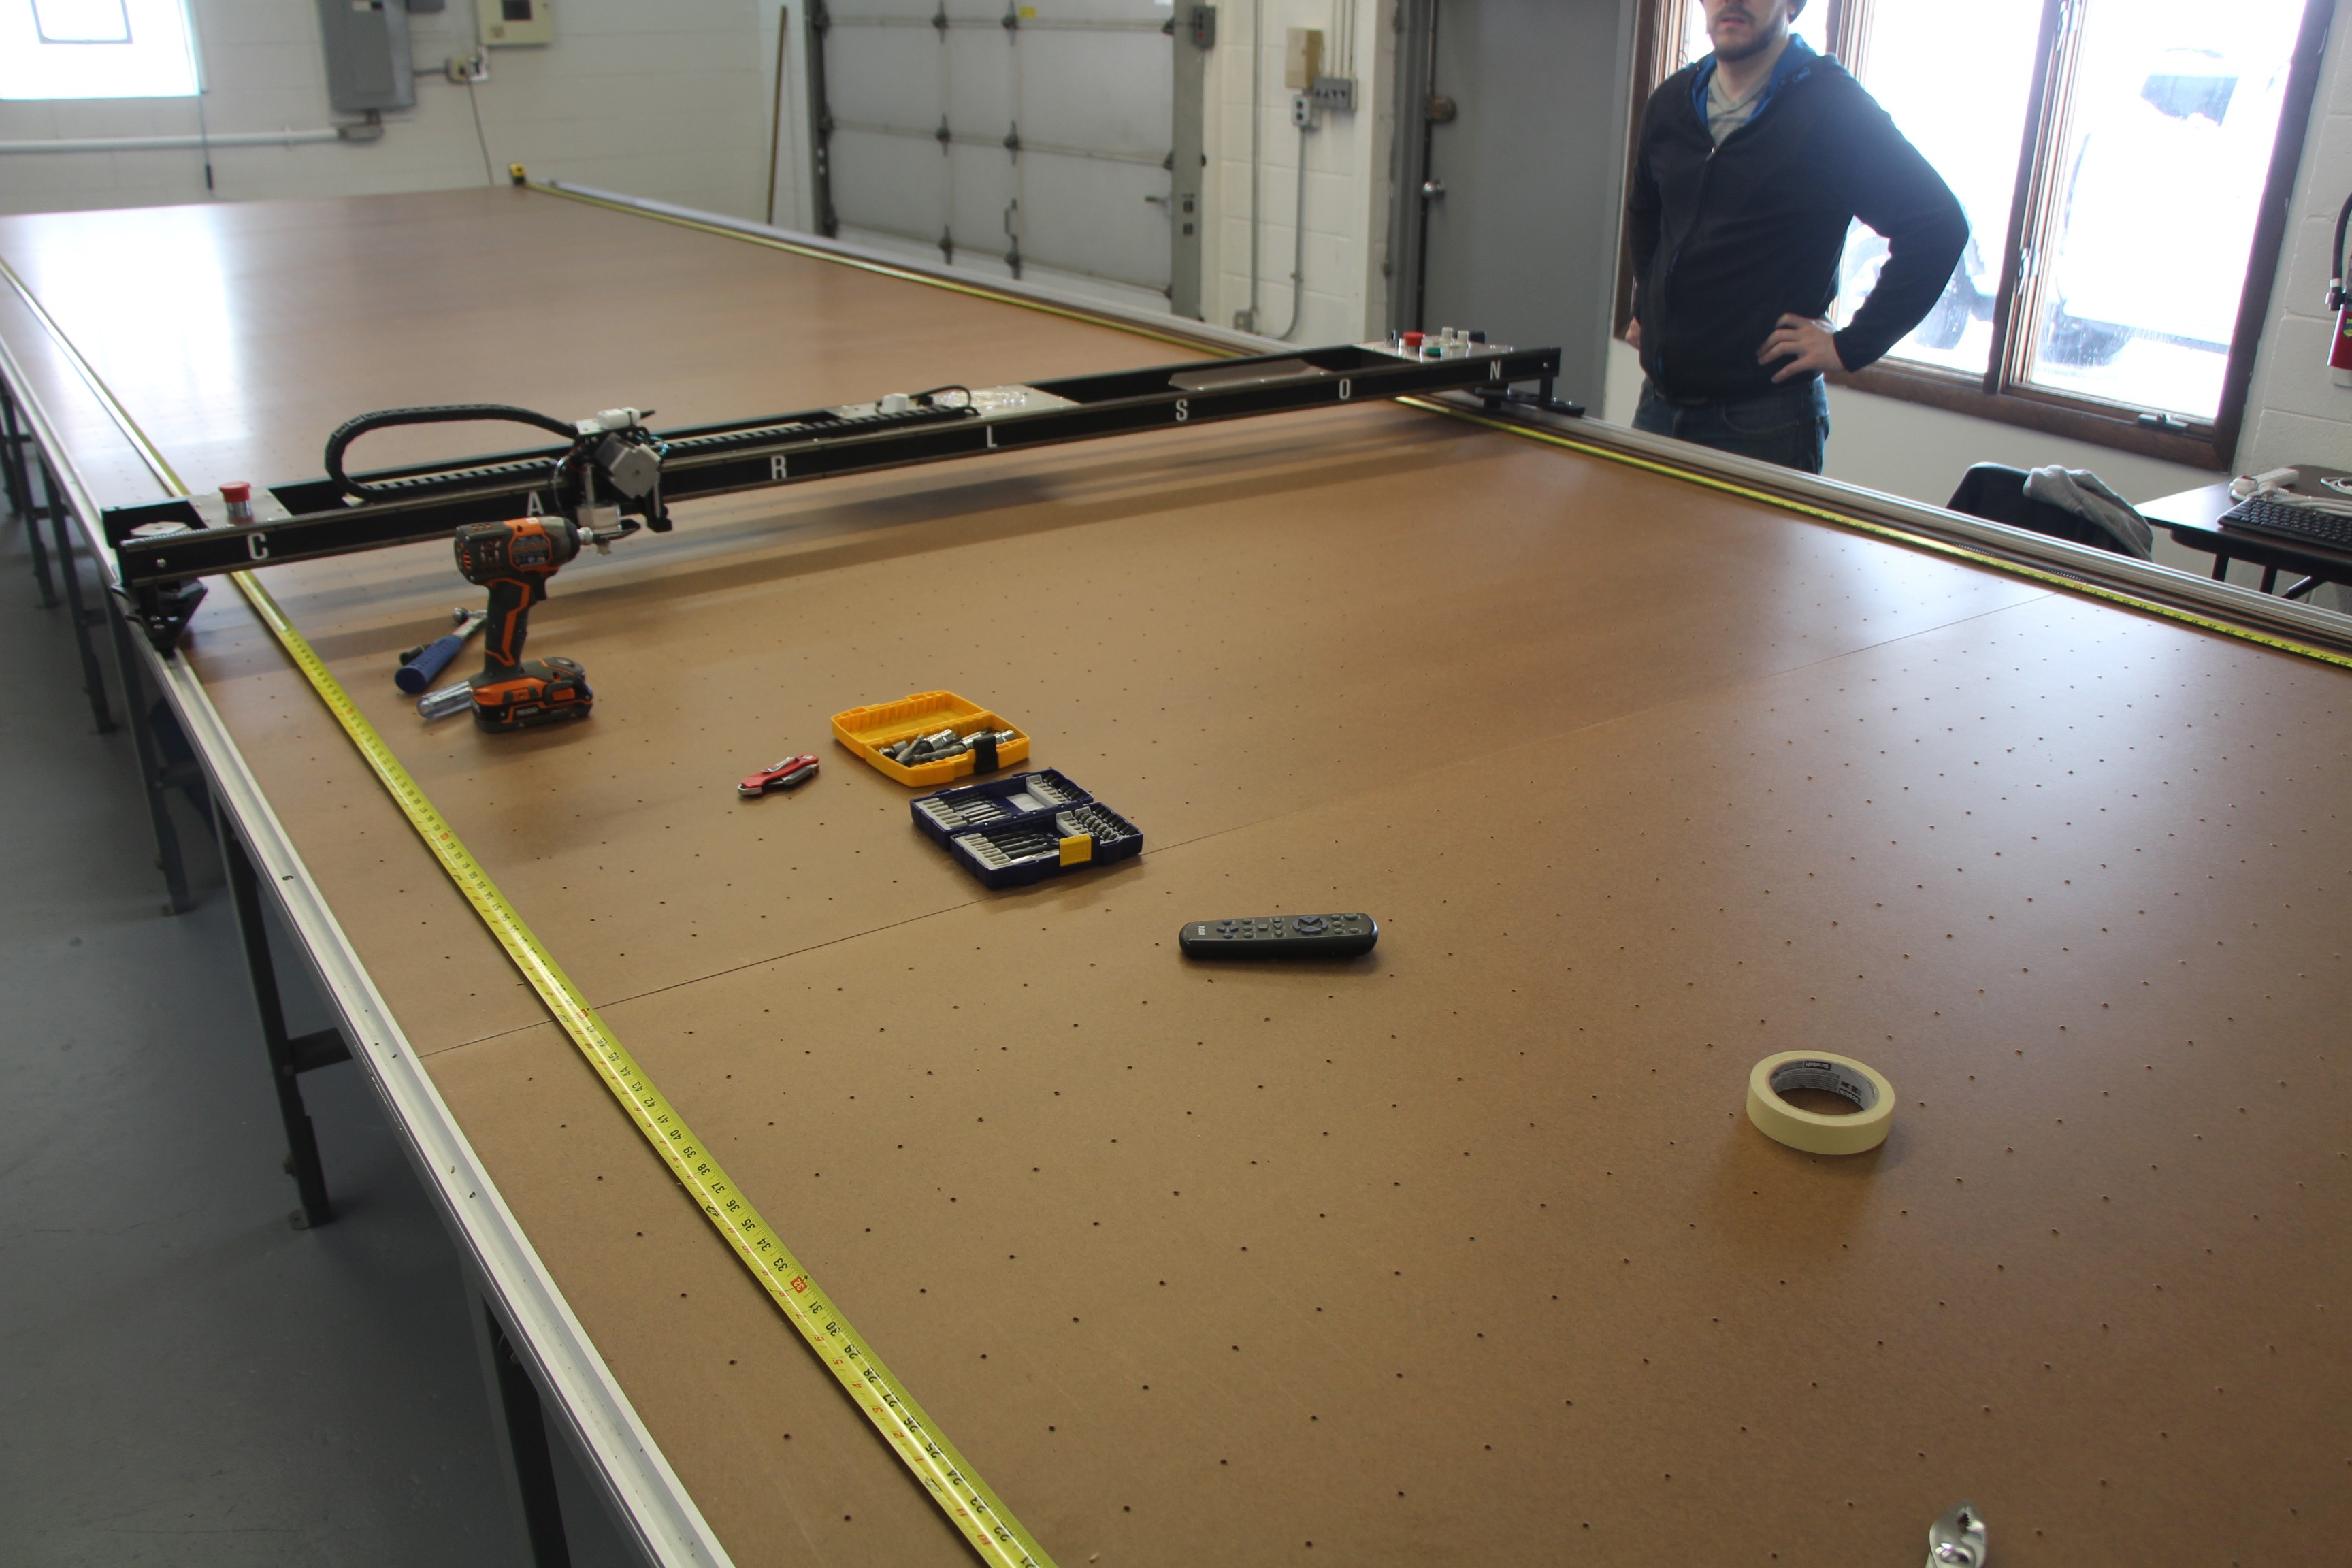 Once one side of table has track installed, we use the machine as a guide to set the track on the other side of the table.